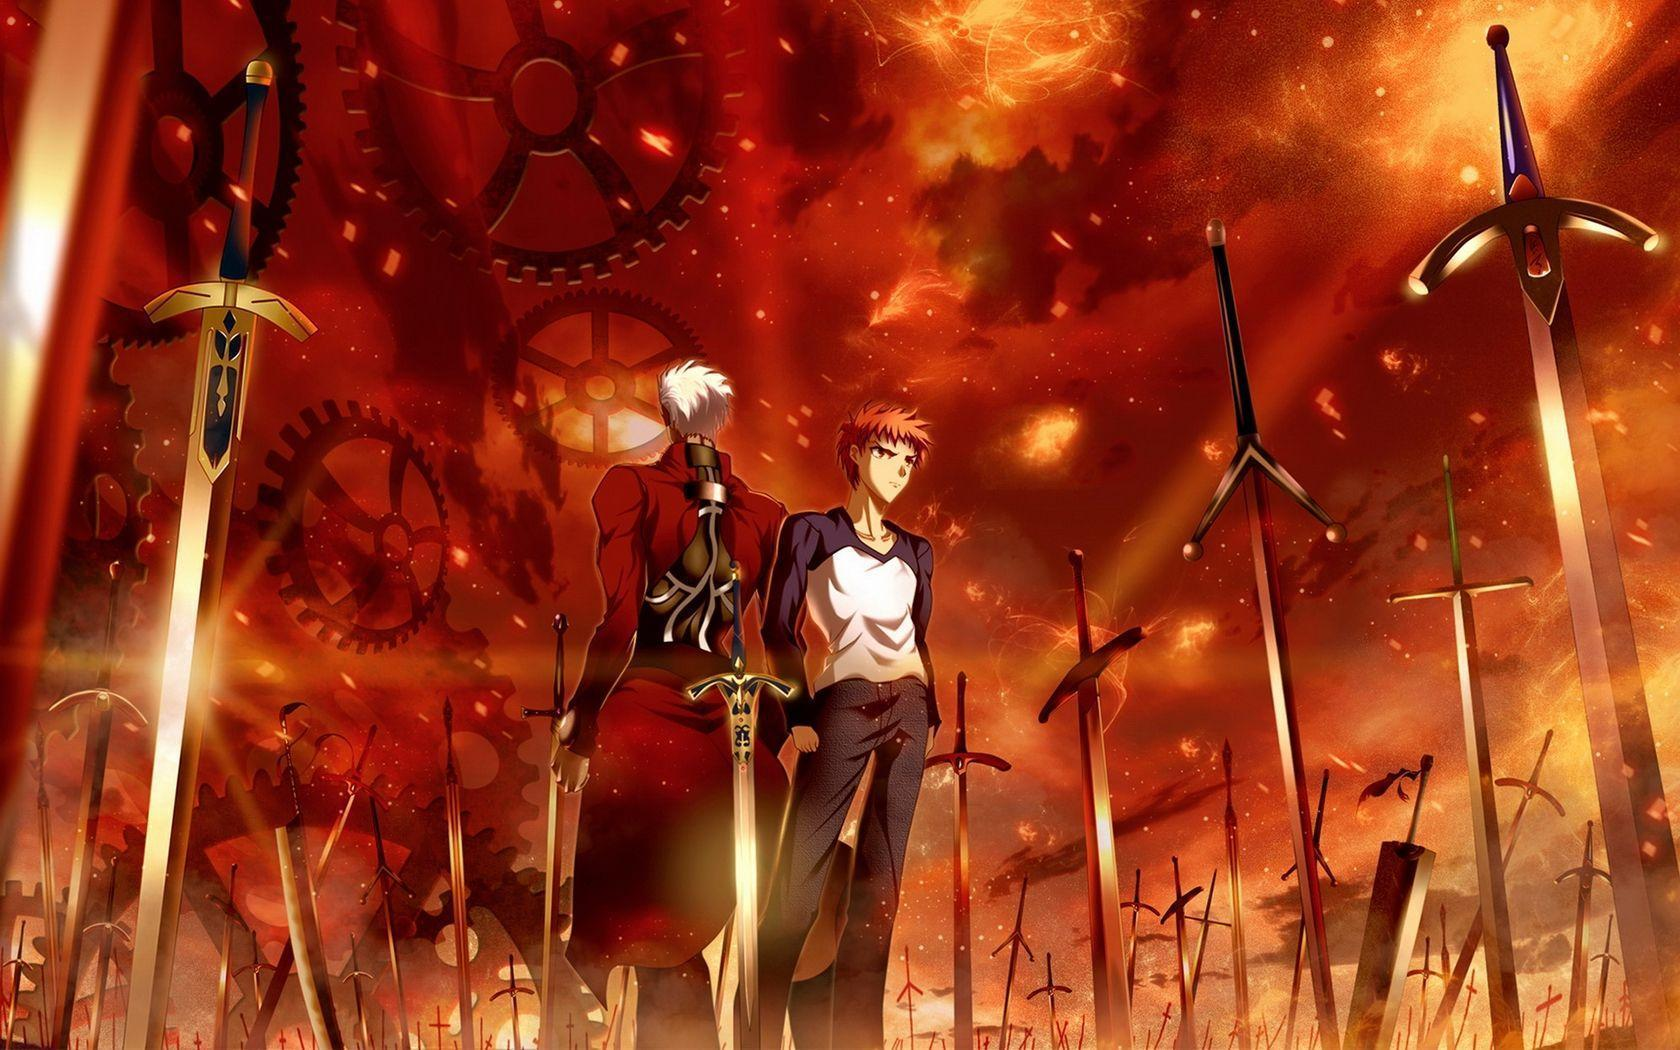 fate/stay night: unlimited blade works wallpapers - wallpaper cave